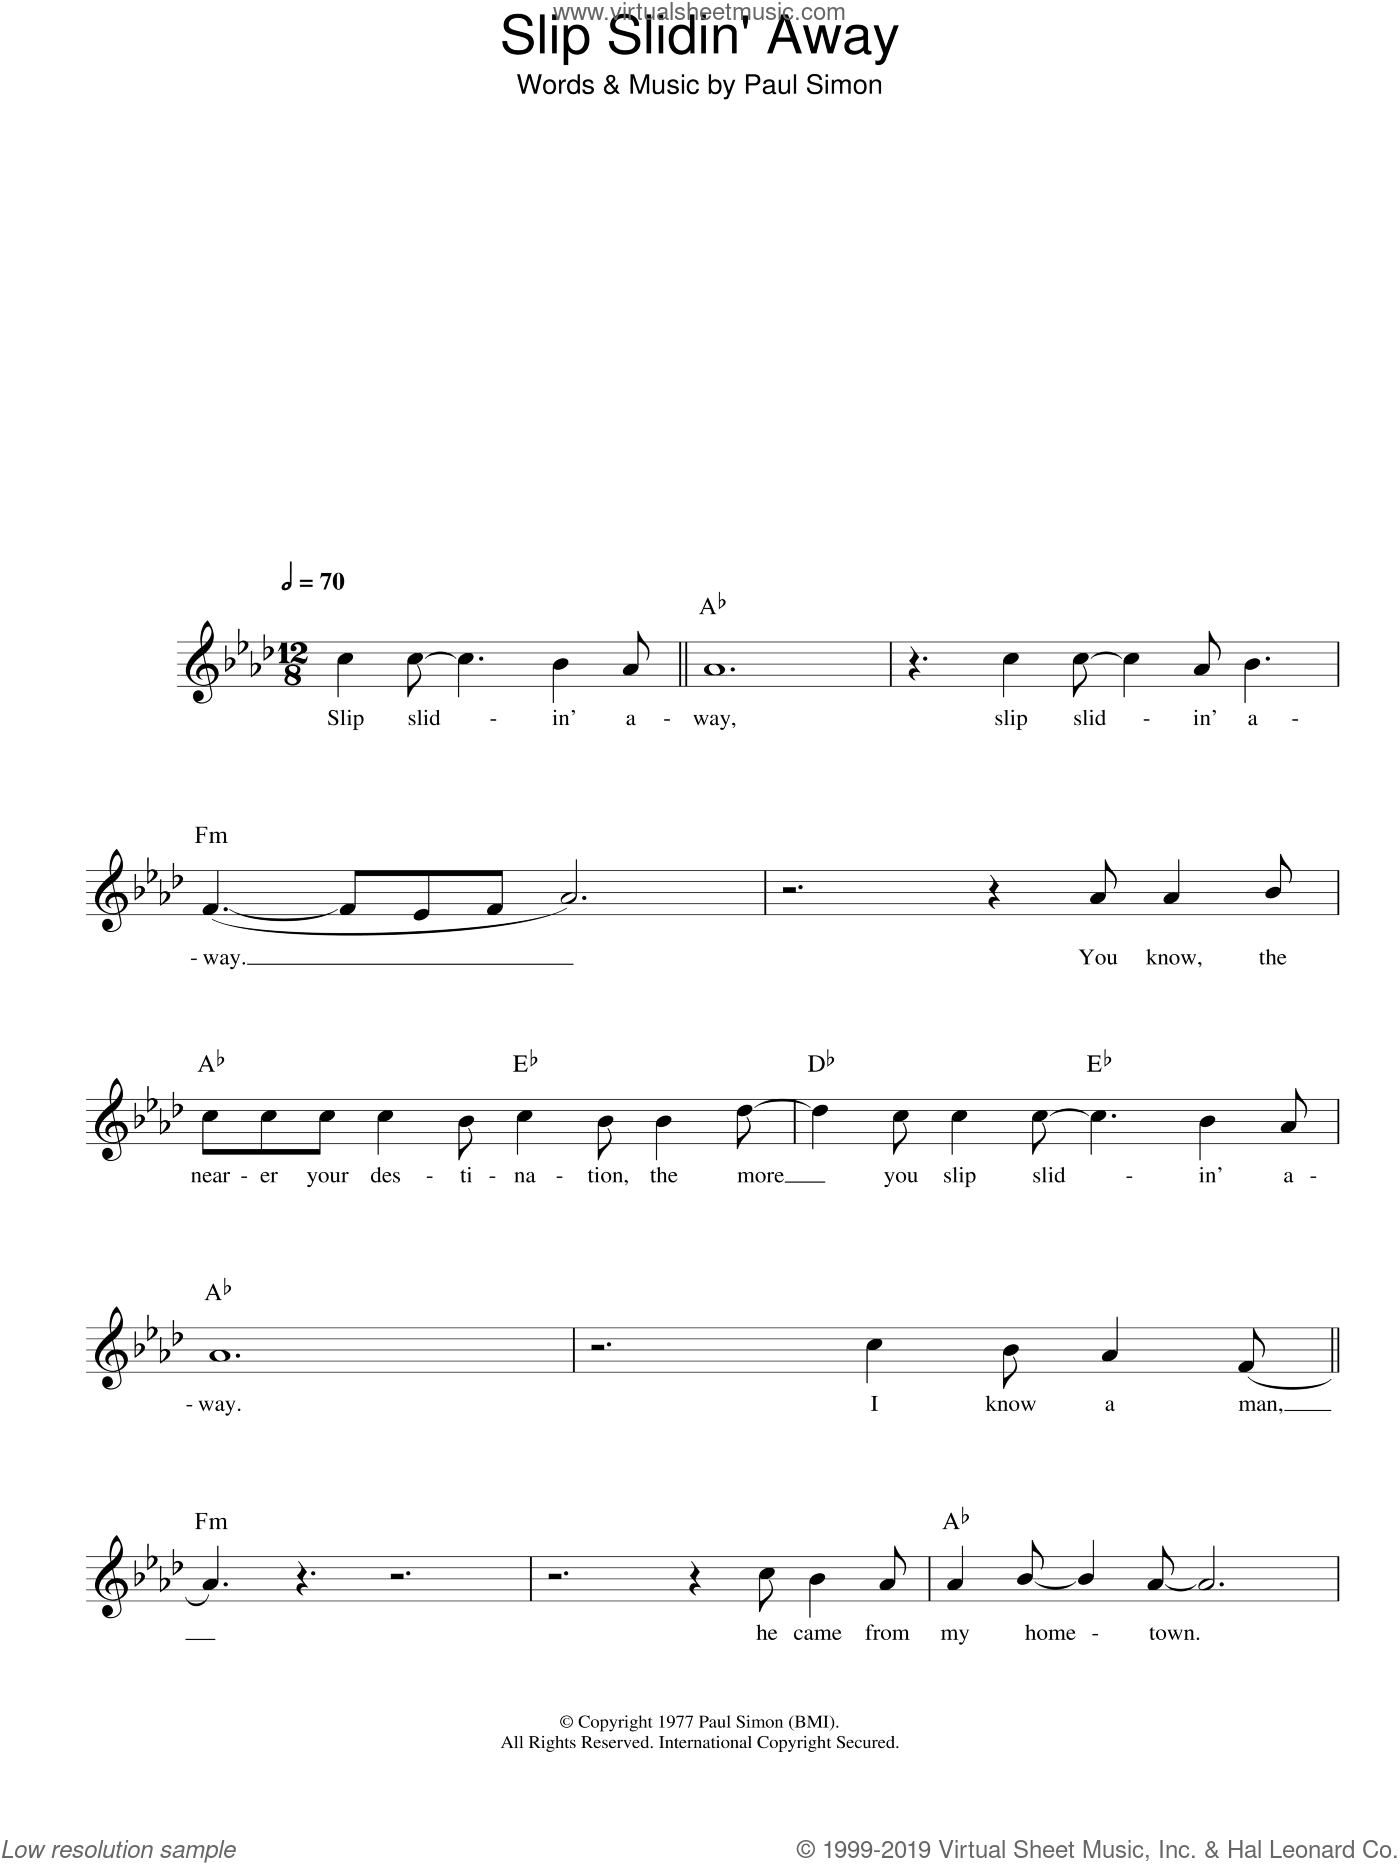 Slip Slidin' Away sheet music for voice and other instruments (fake book) by Paul Simon, intermediate skill level